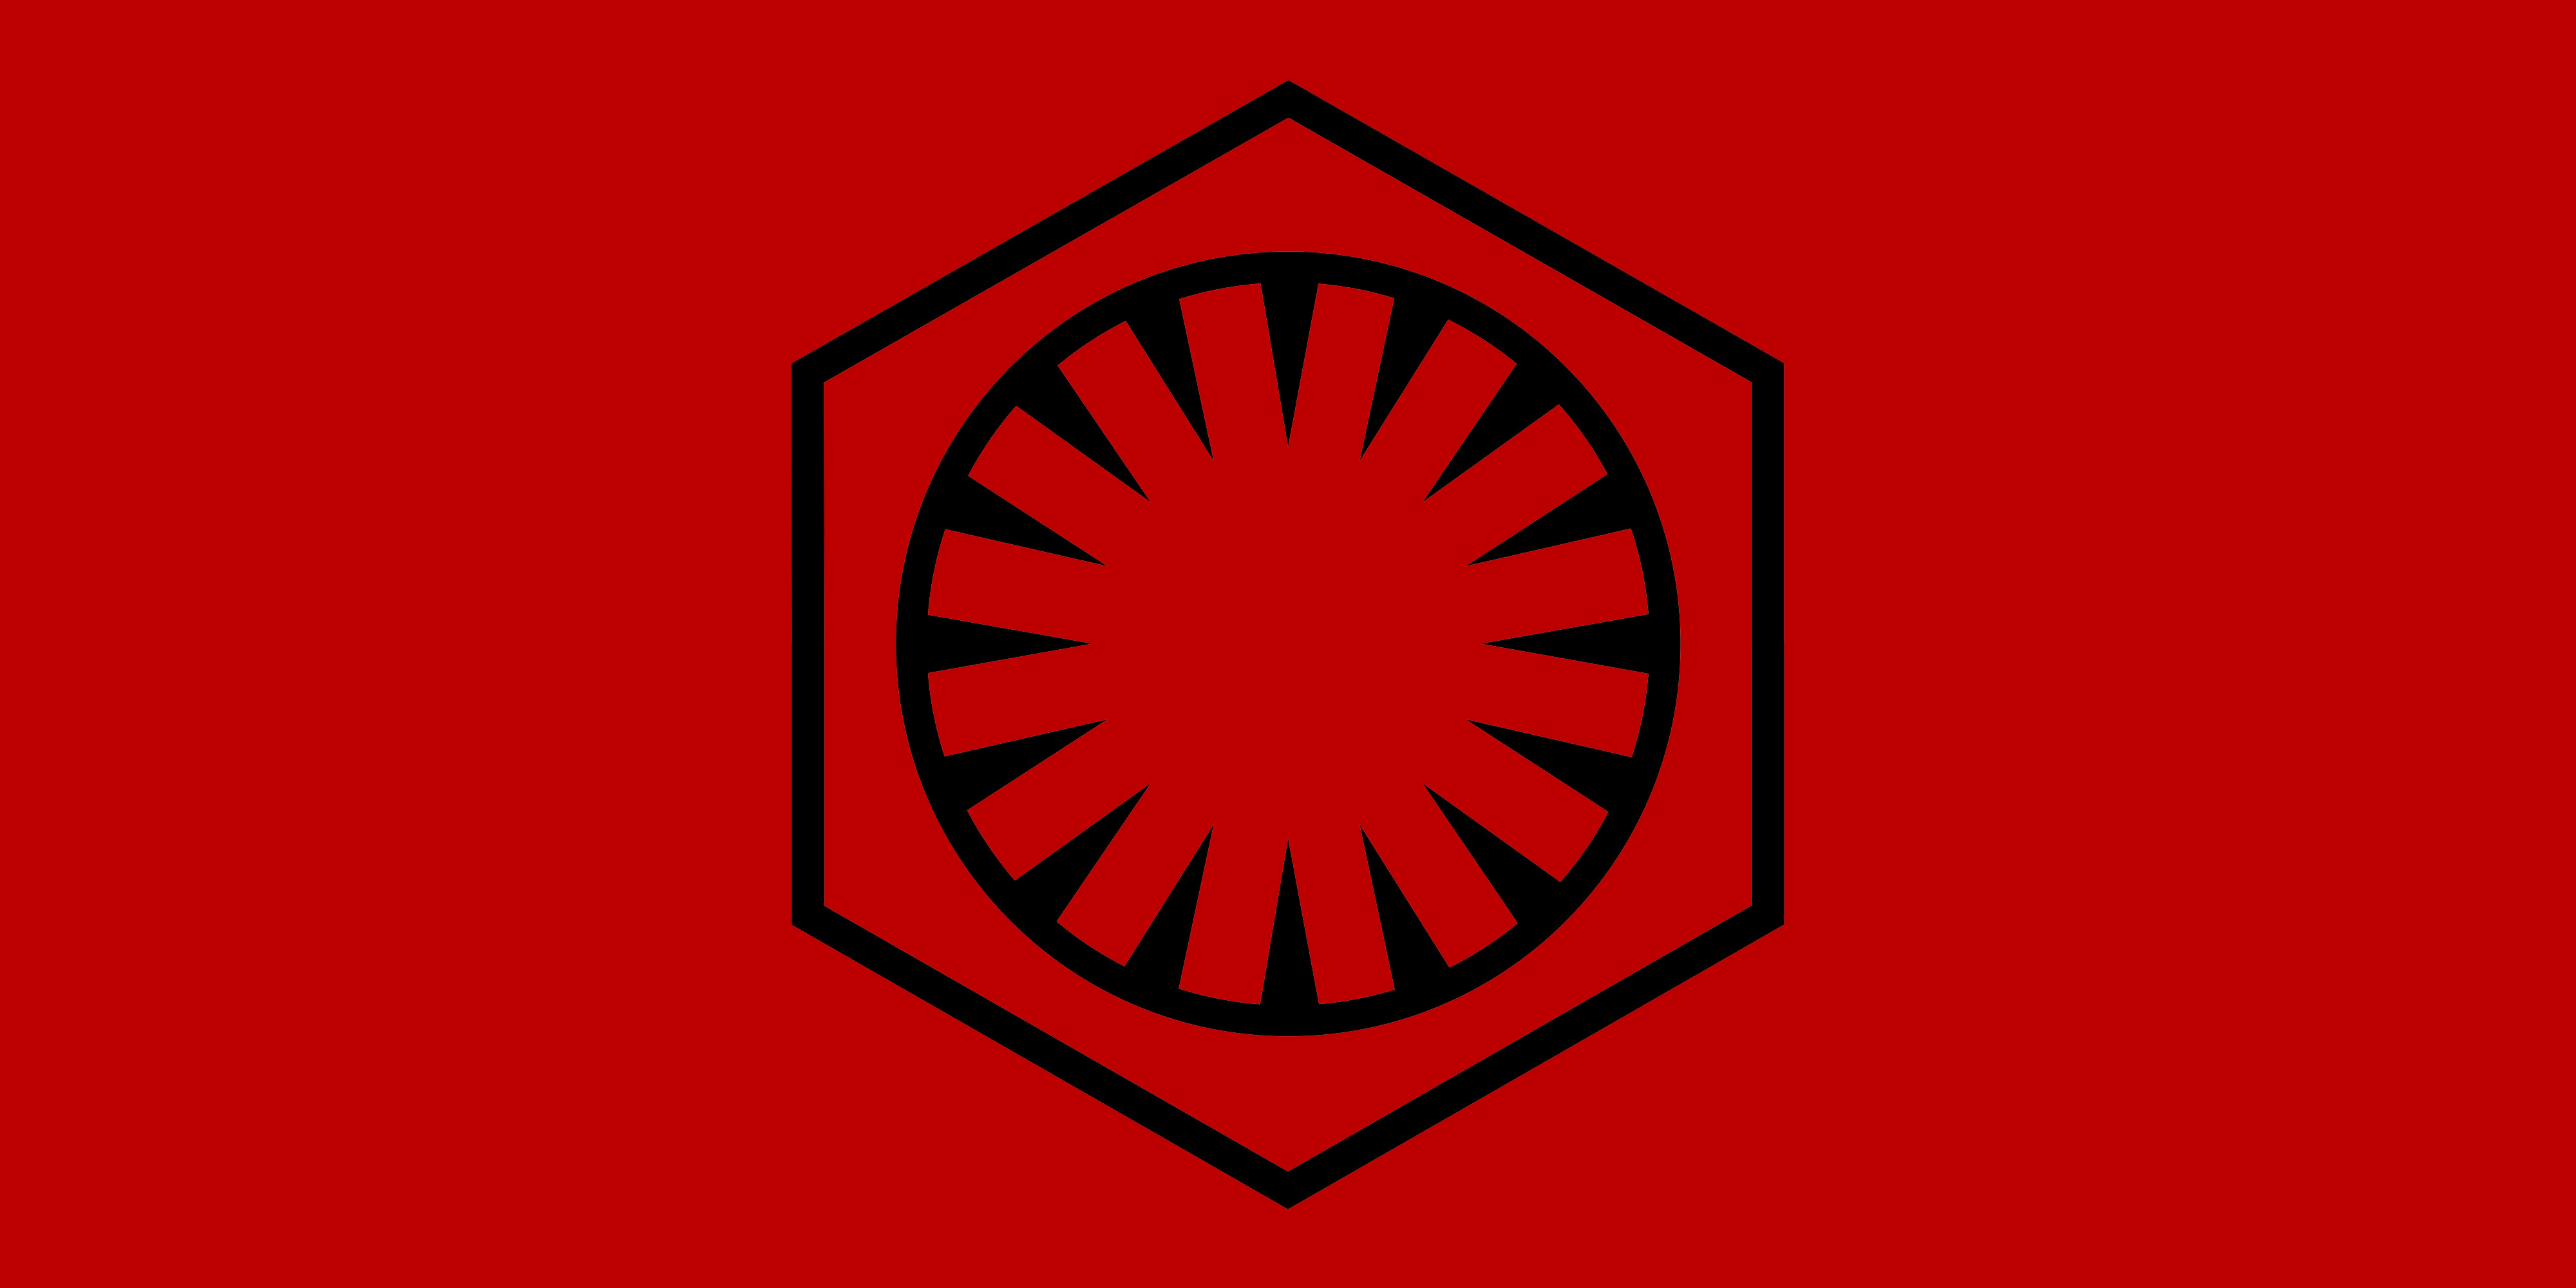 Flag of the First Order Star Wars VII by RedRich1917 4000x2000